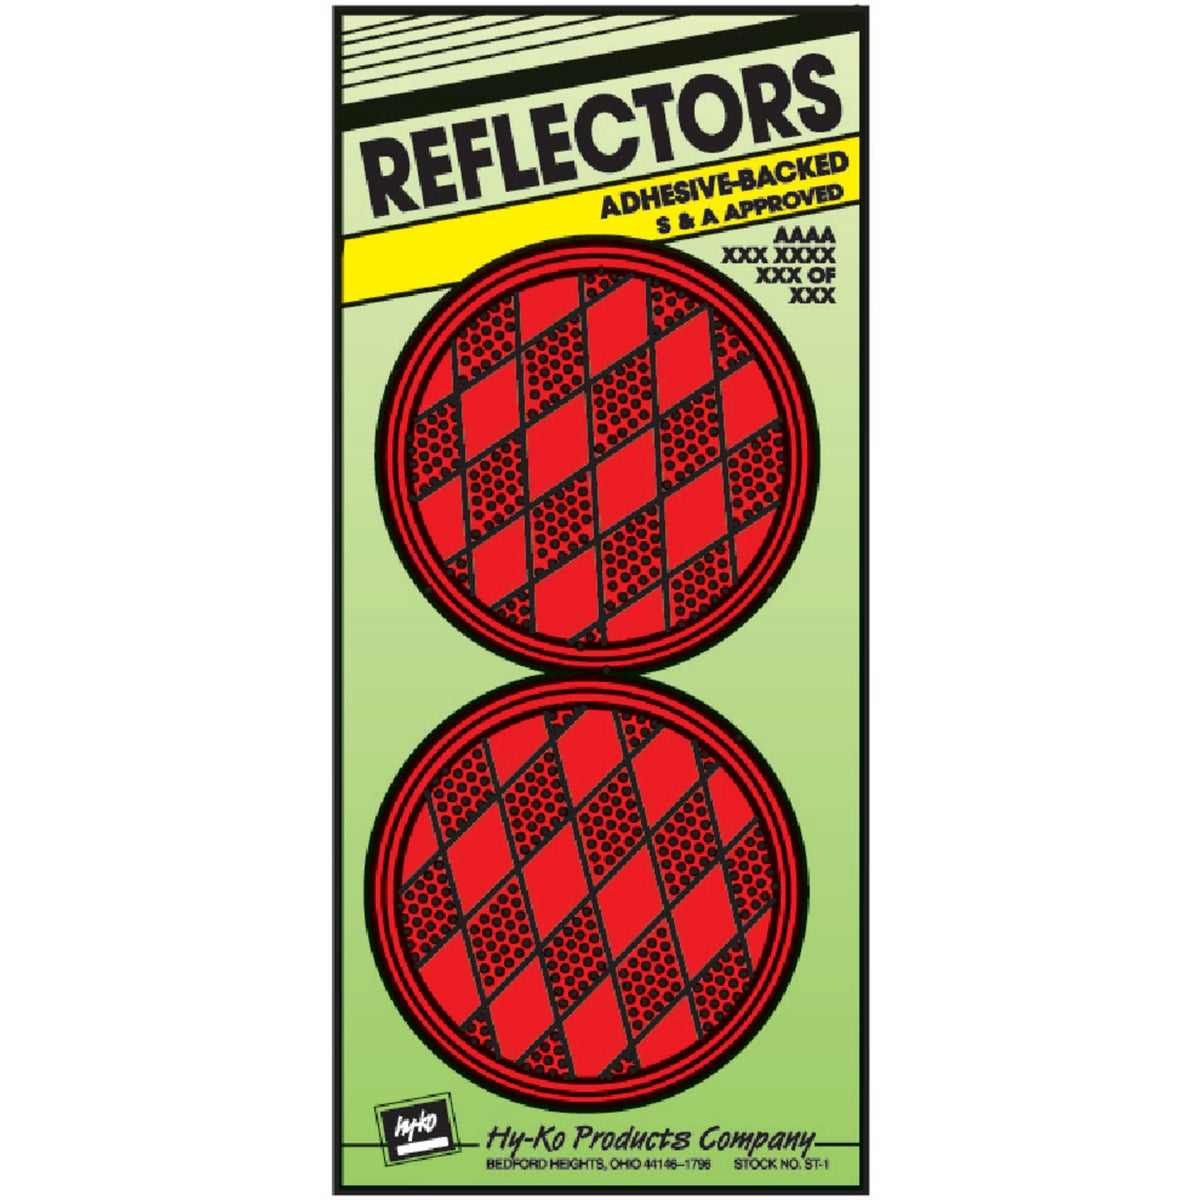 PRESS ON RED REFLECTORS - CDRF-4R by Hy Ko Prods Co